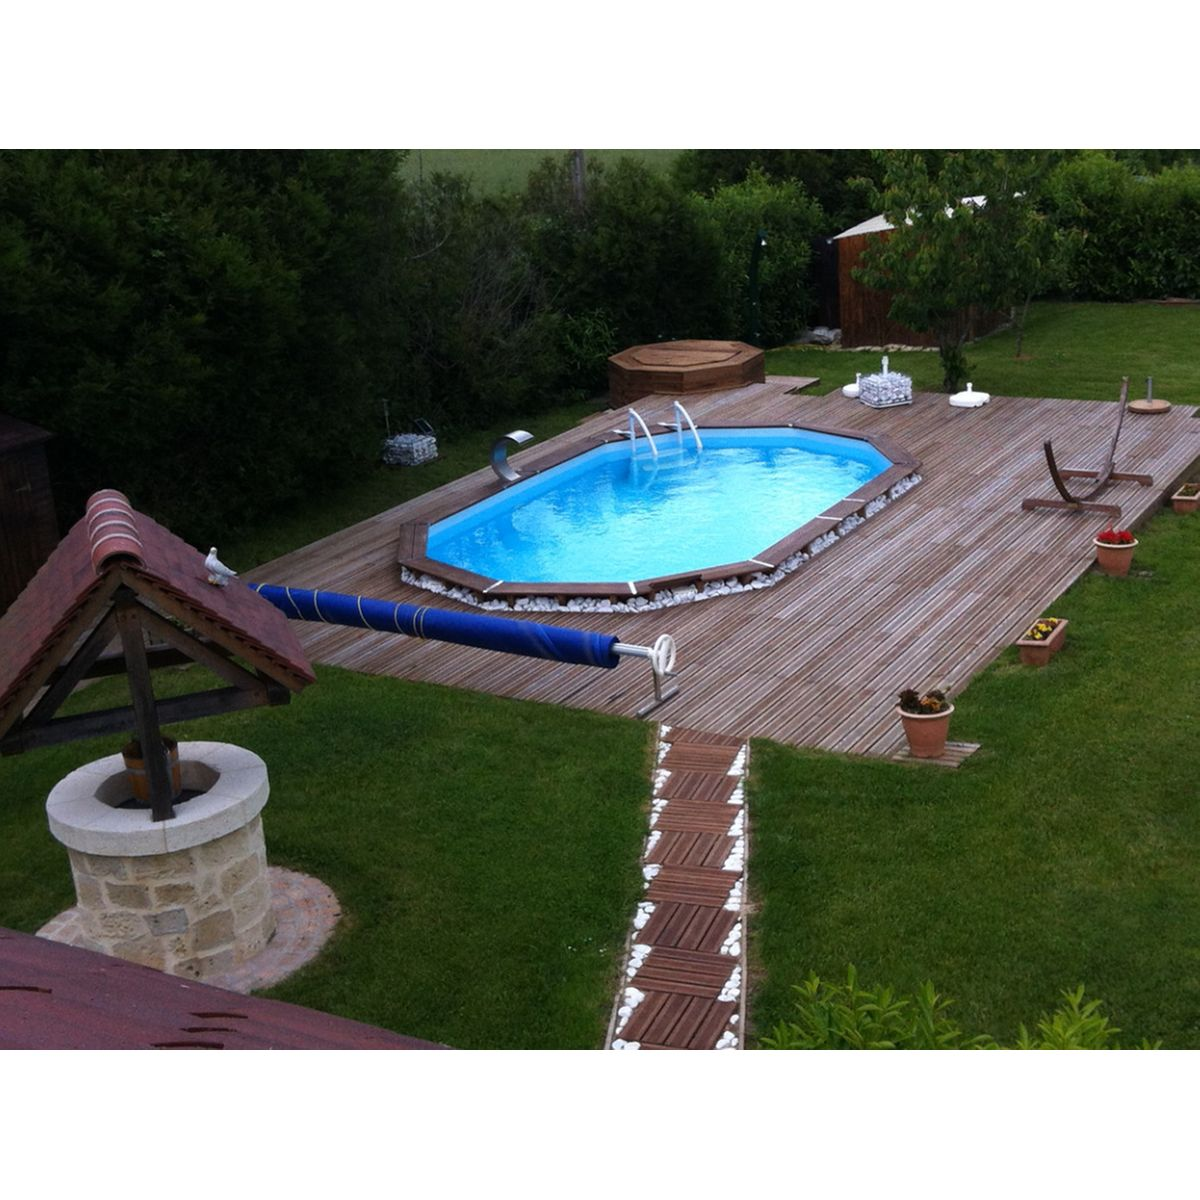 Piscine hors sol bois topiwall for Piscine hors sol cora